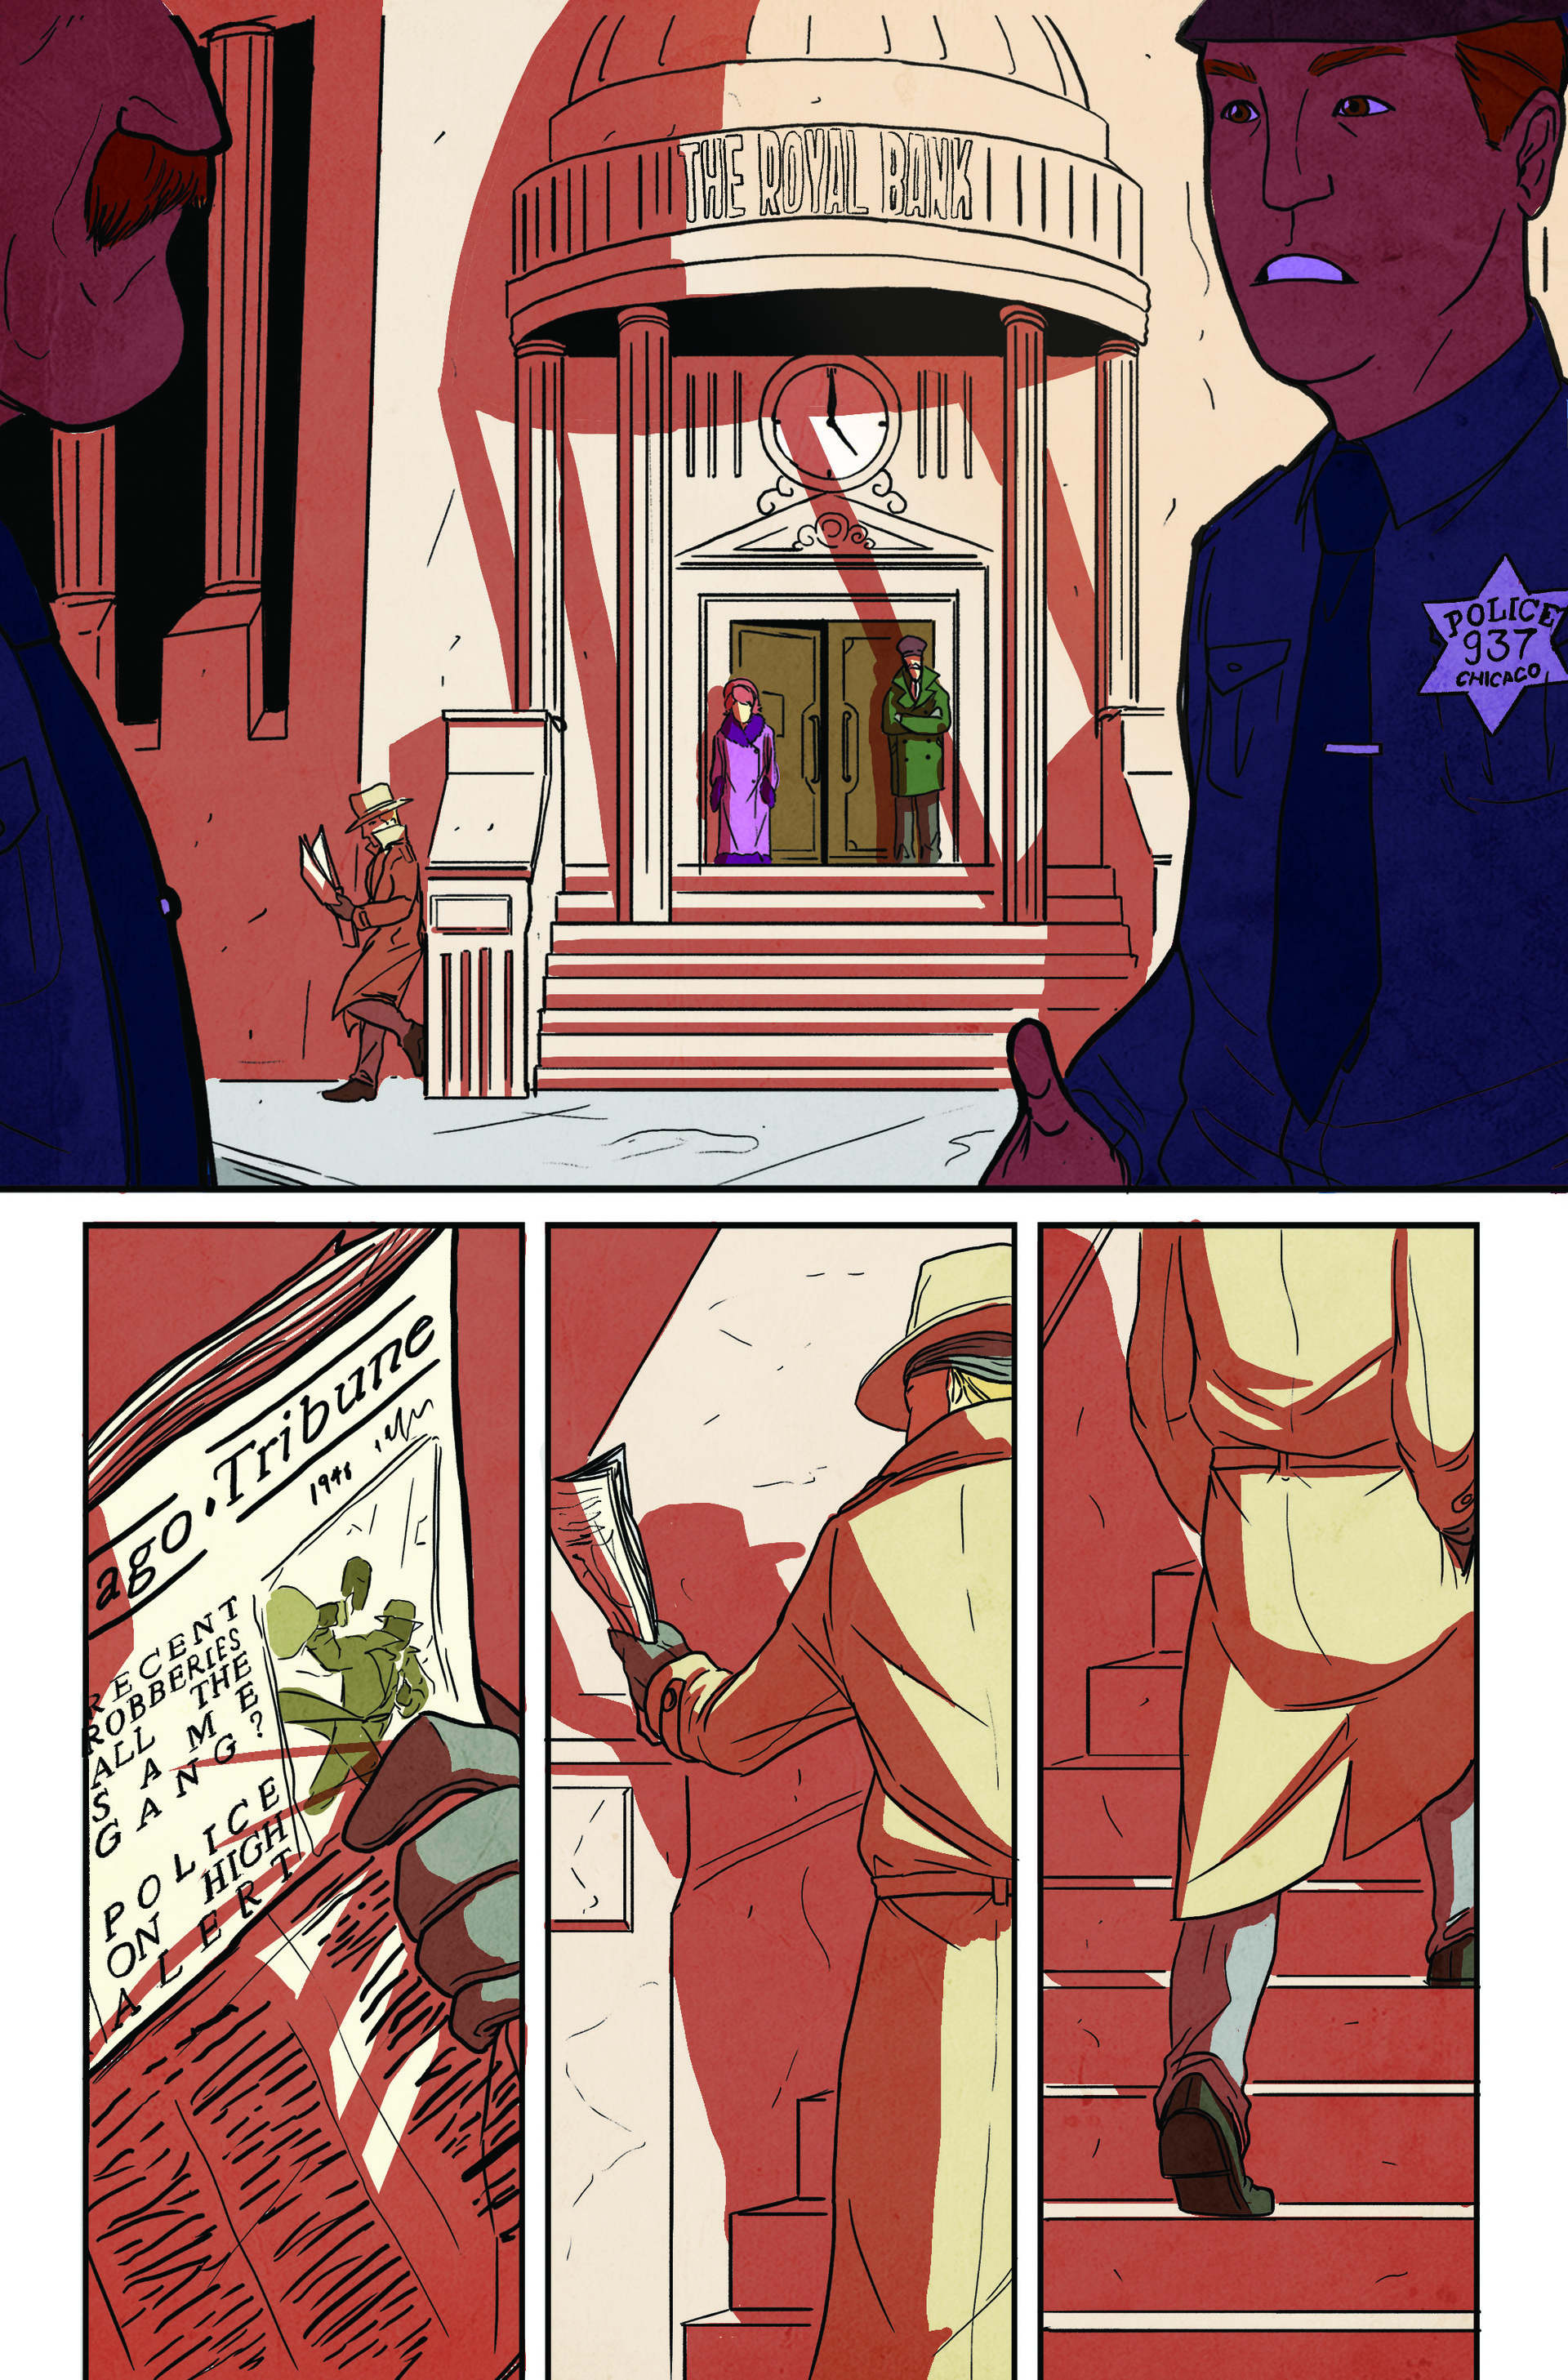 Elliot balson page 1 colours royal